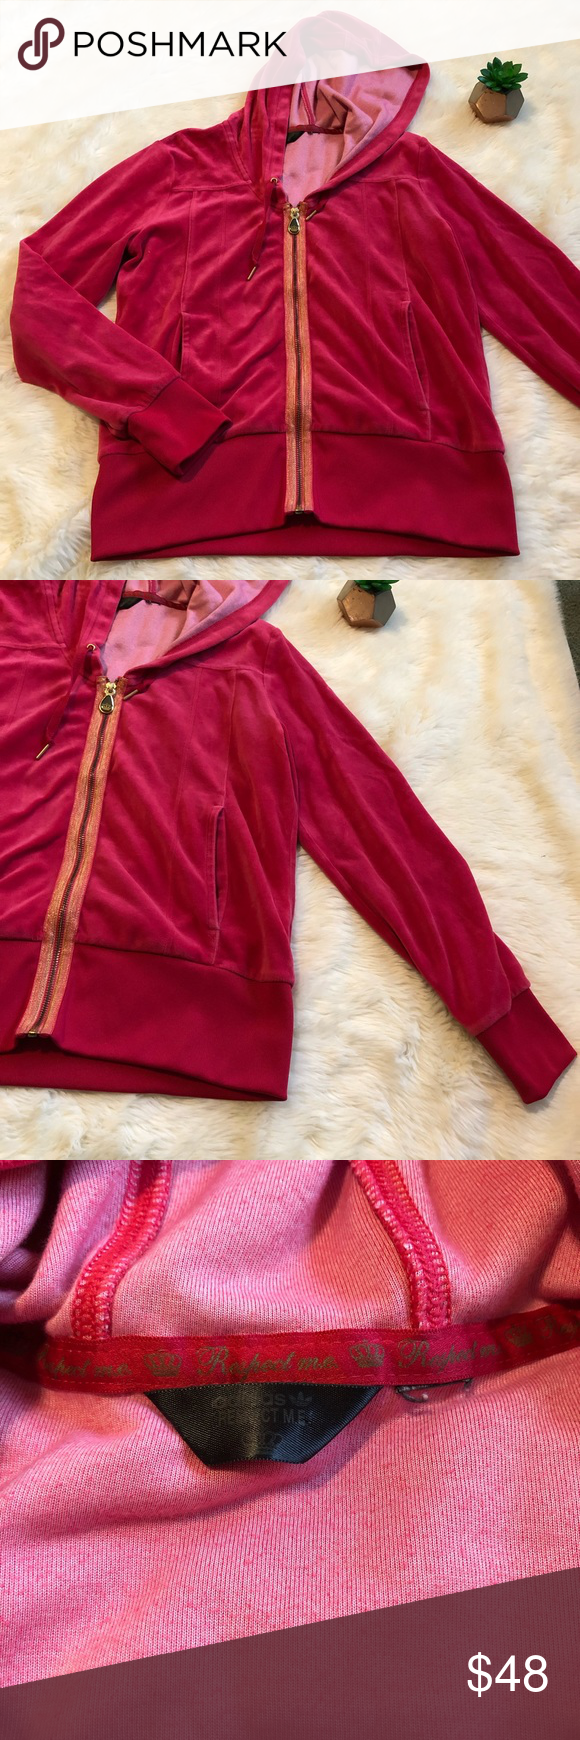 Adidas Respect Me Velvet Hot Pink Zip Up Adidas Missy